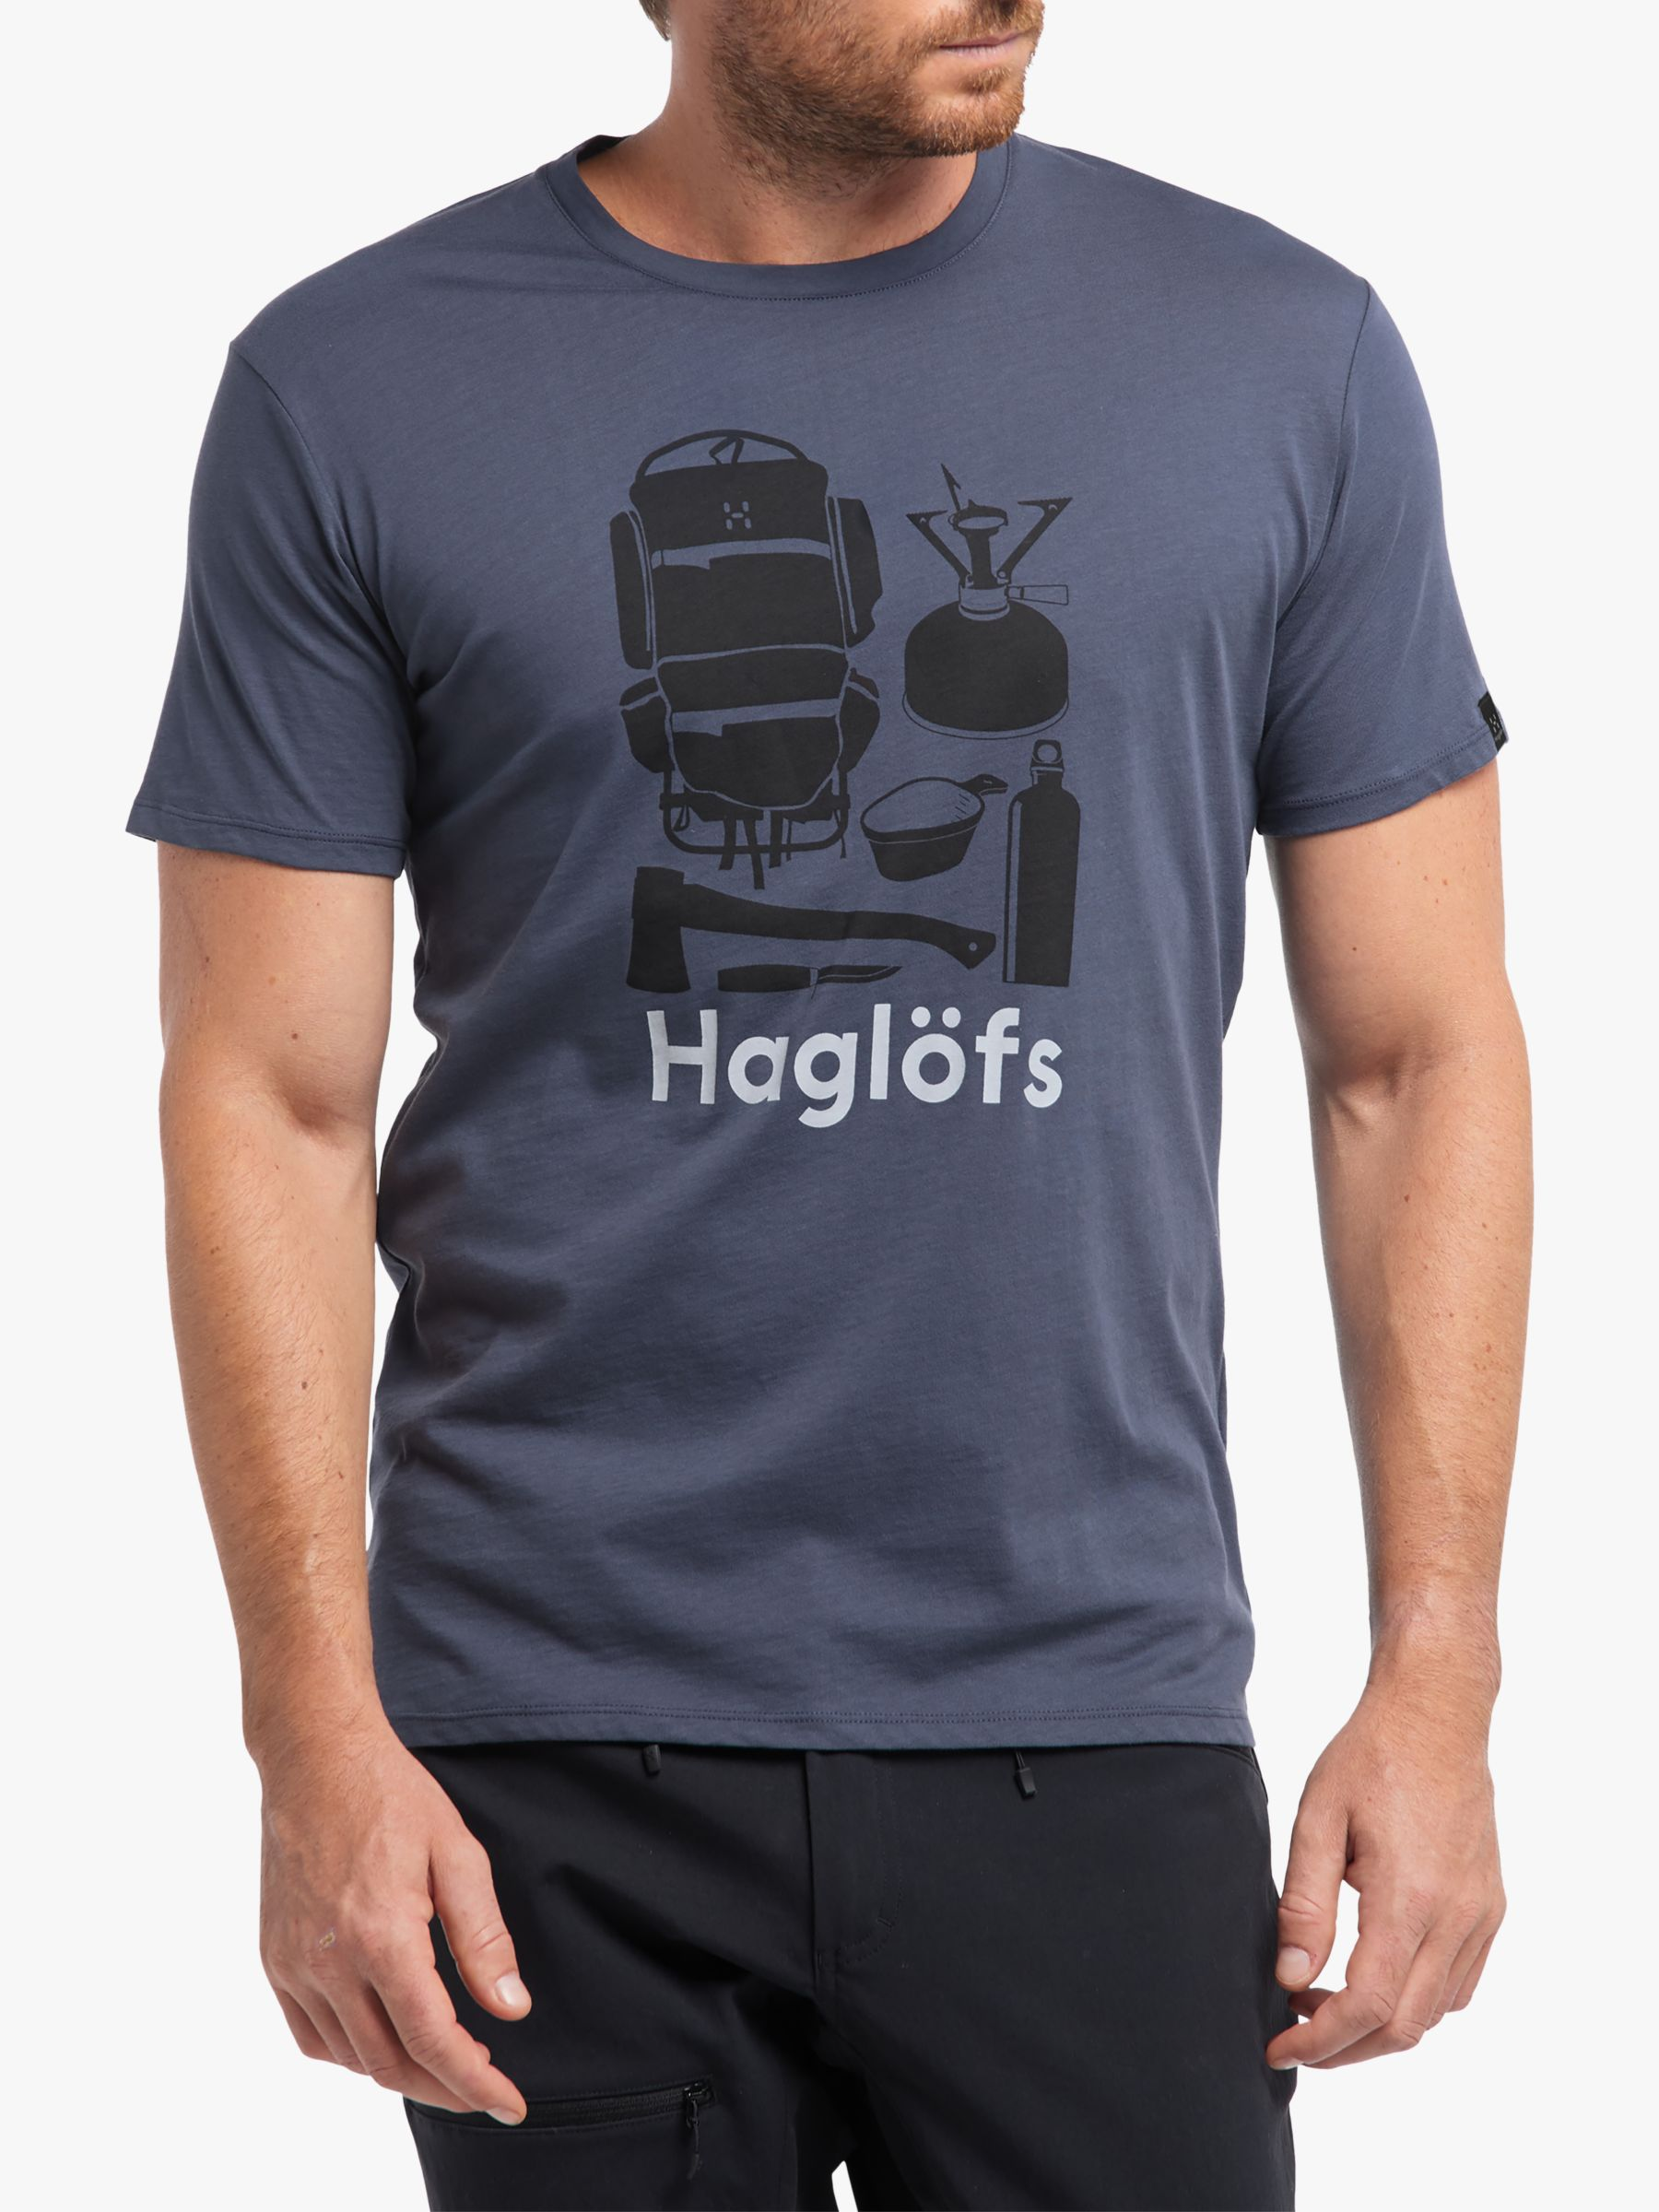 Haglofs Haglöfs Camp Organic Cotton T-Shirt, Dense Blue/True Blue